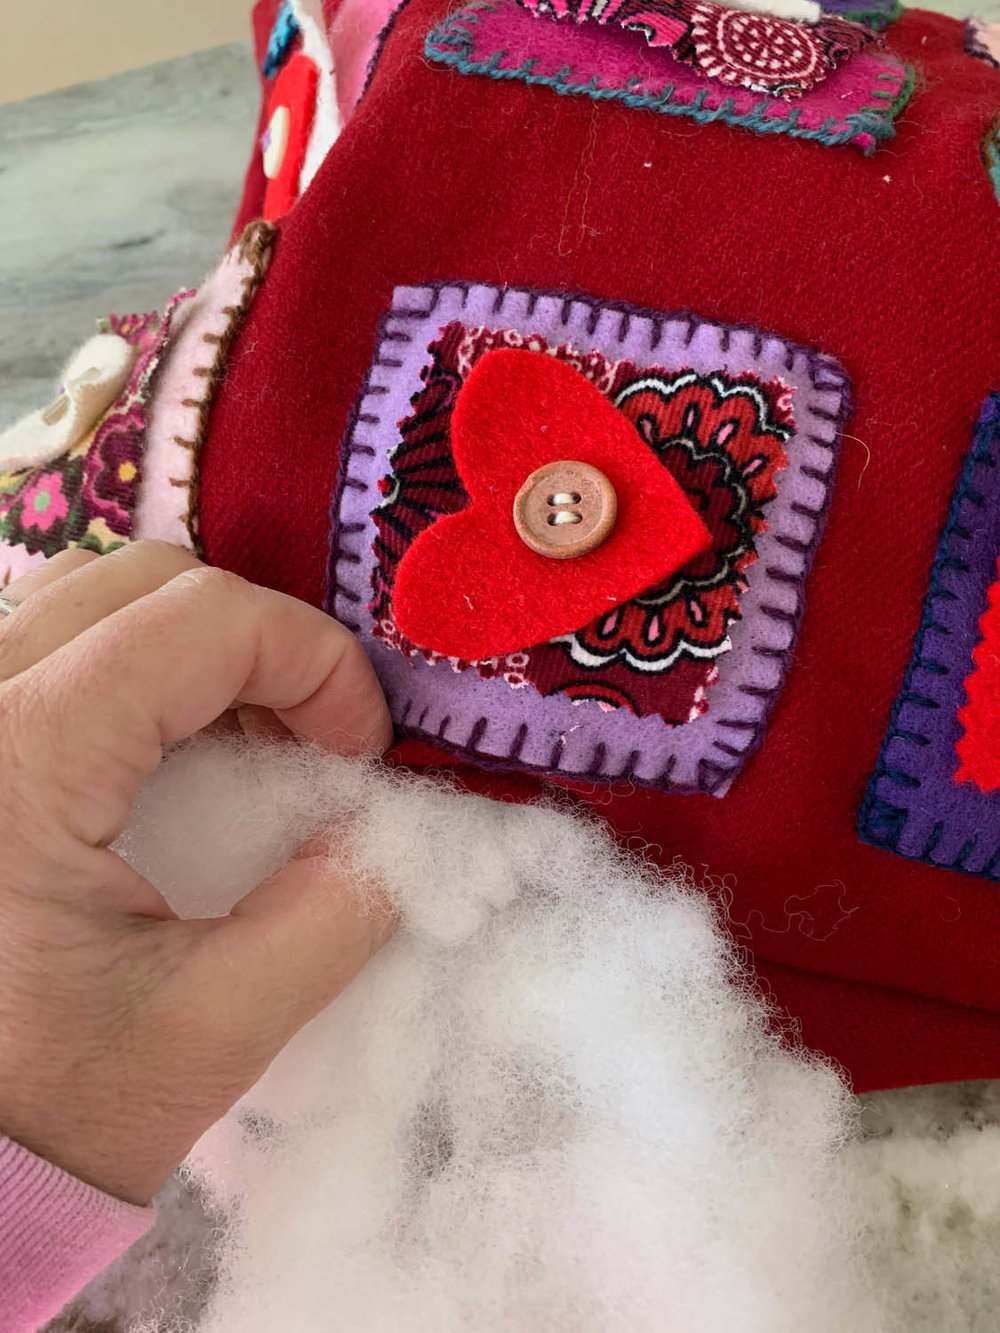 Hand stuffing fiberfill into folksy handmade felted heart pillow